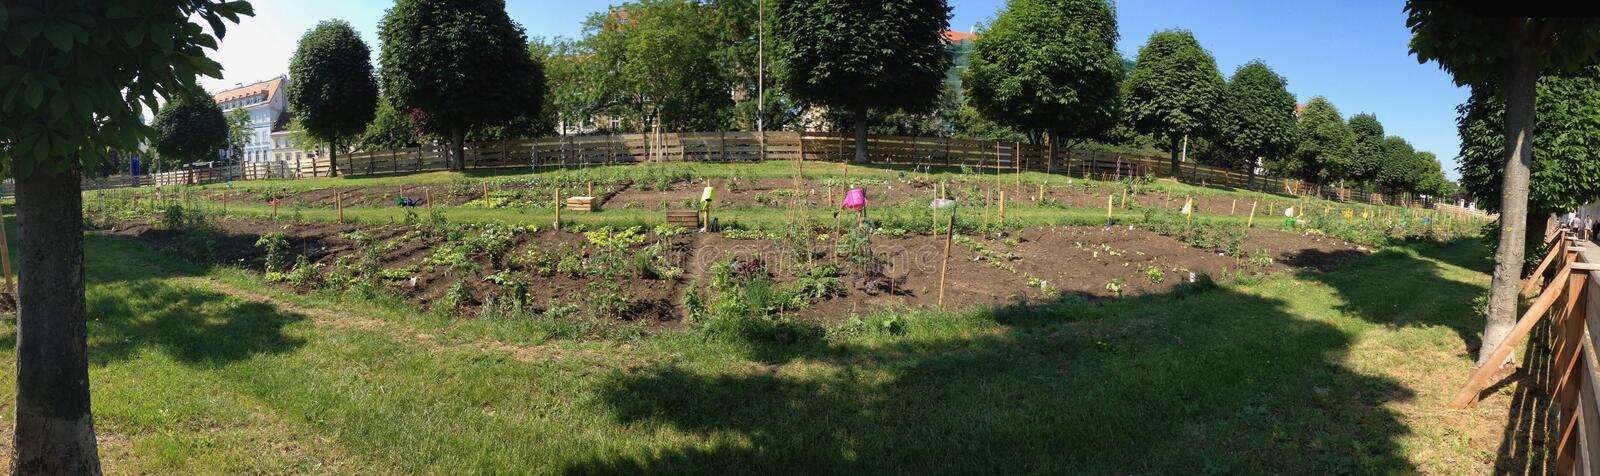 Urban gardening in Vienna Austria at the Augarten. Sustainability Concept royalty free stock images